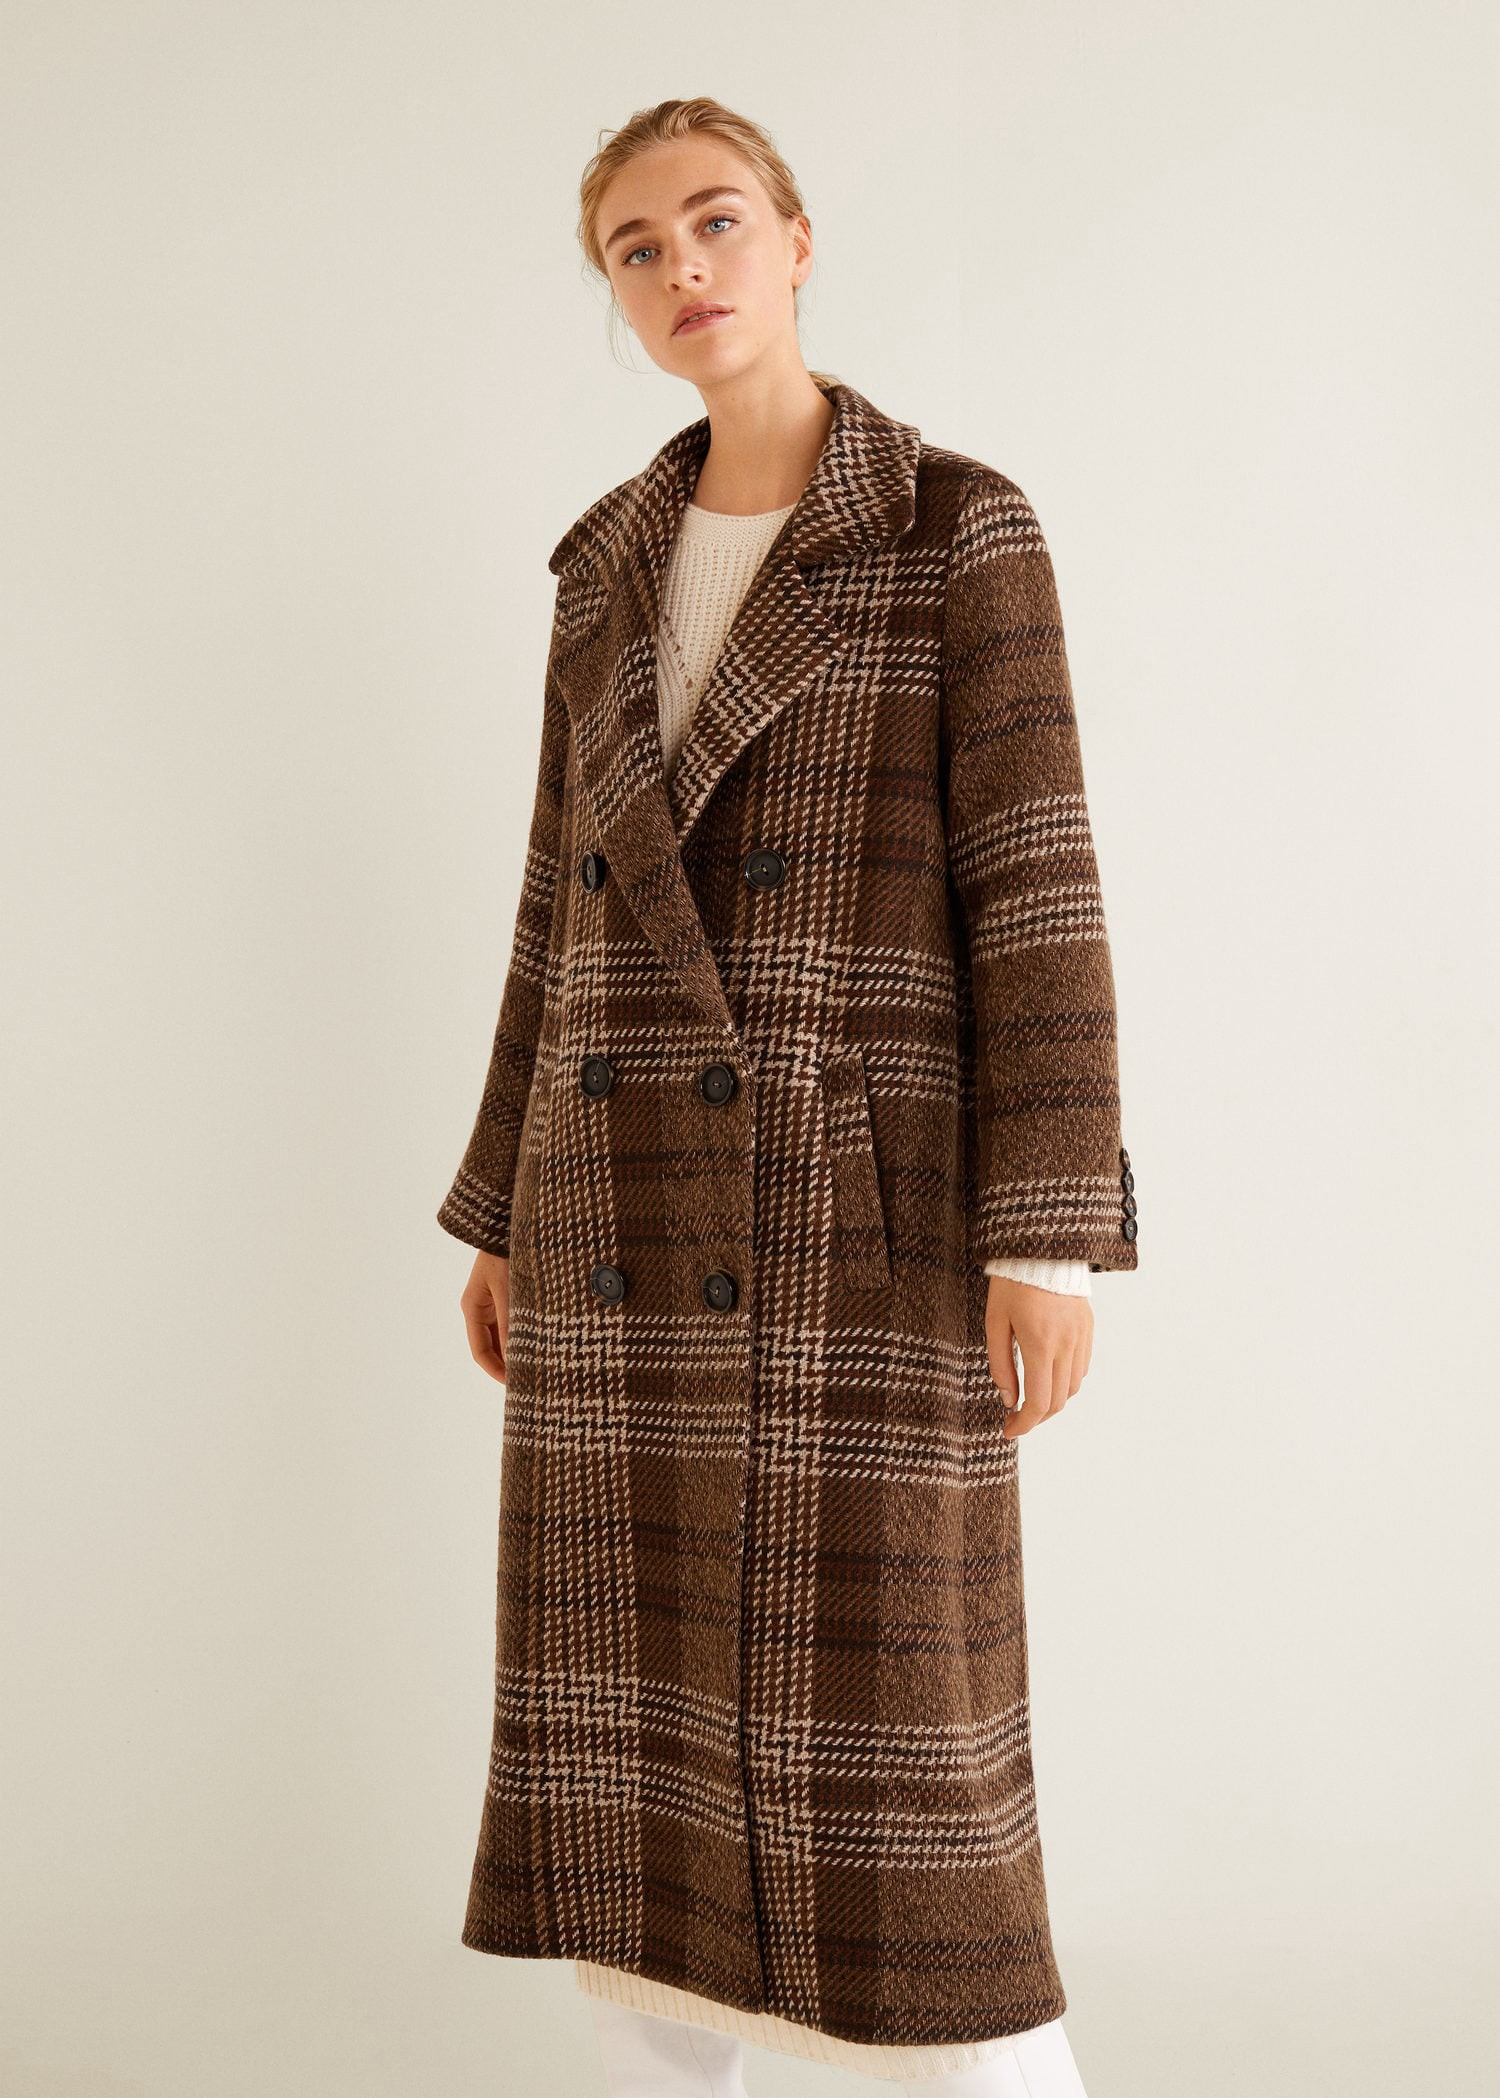 0d5cede3b7d Mango Long Recycled Wool Coat - XS | Products | Wool coat, Mango ...